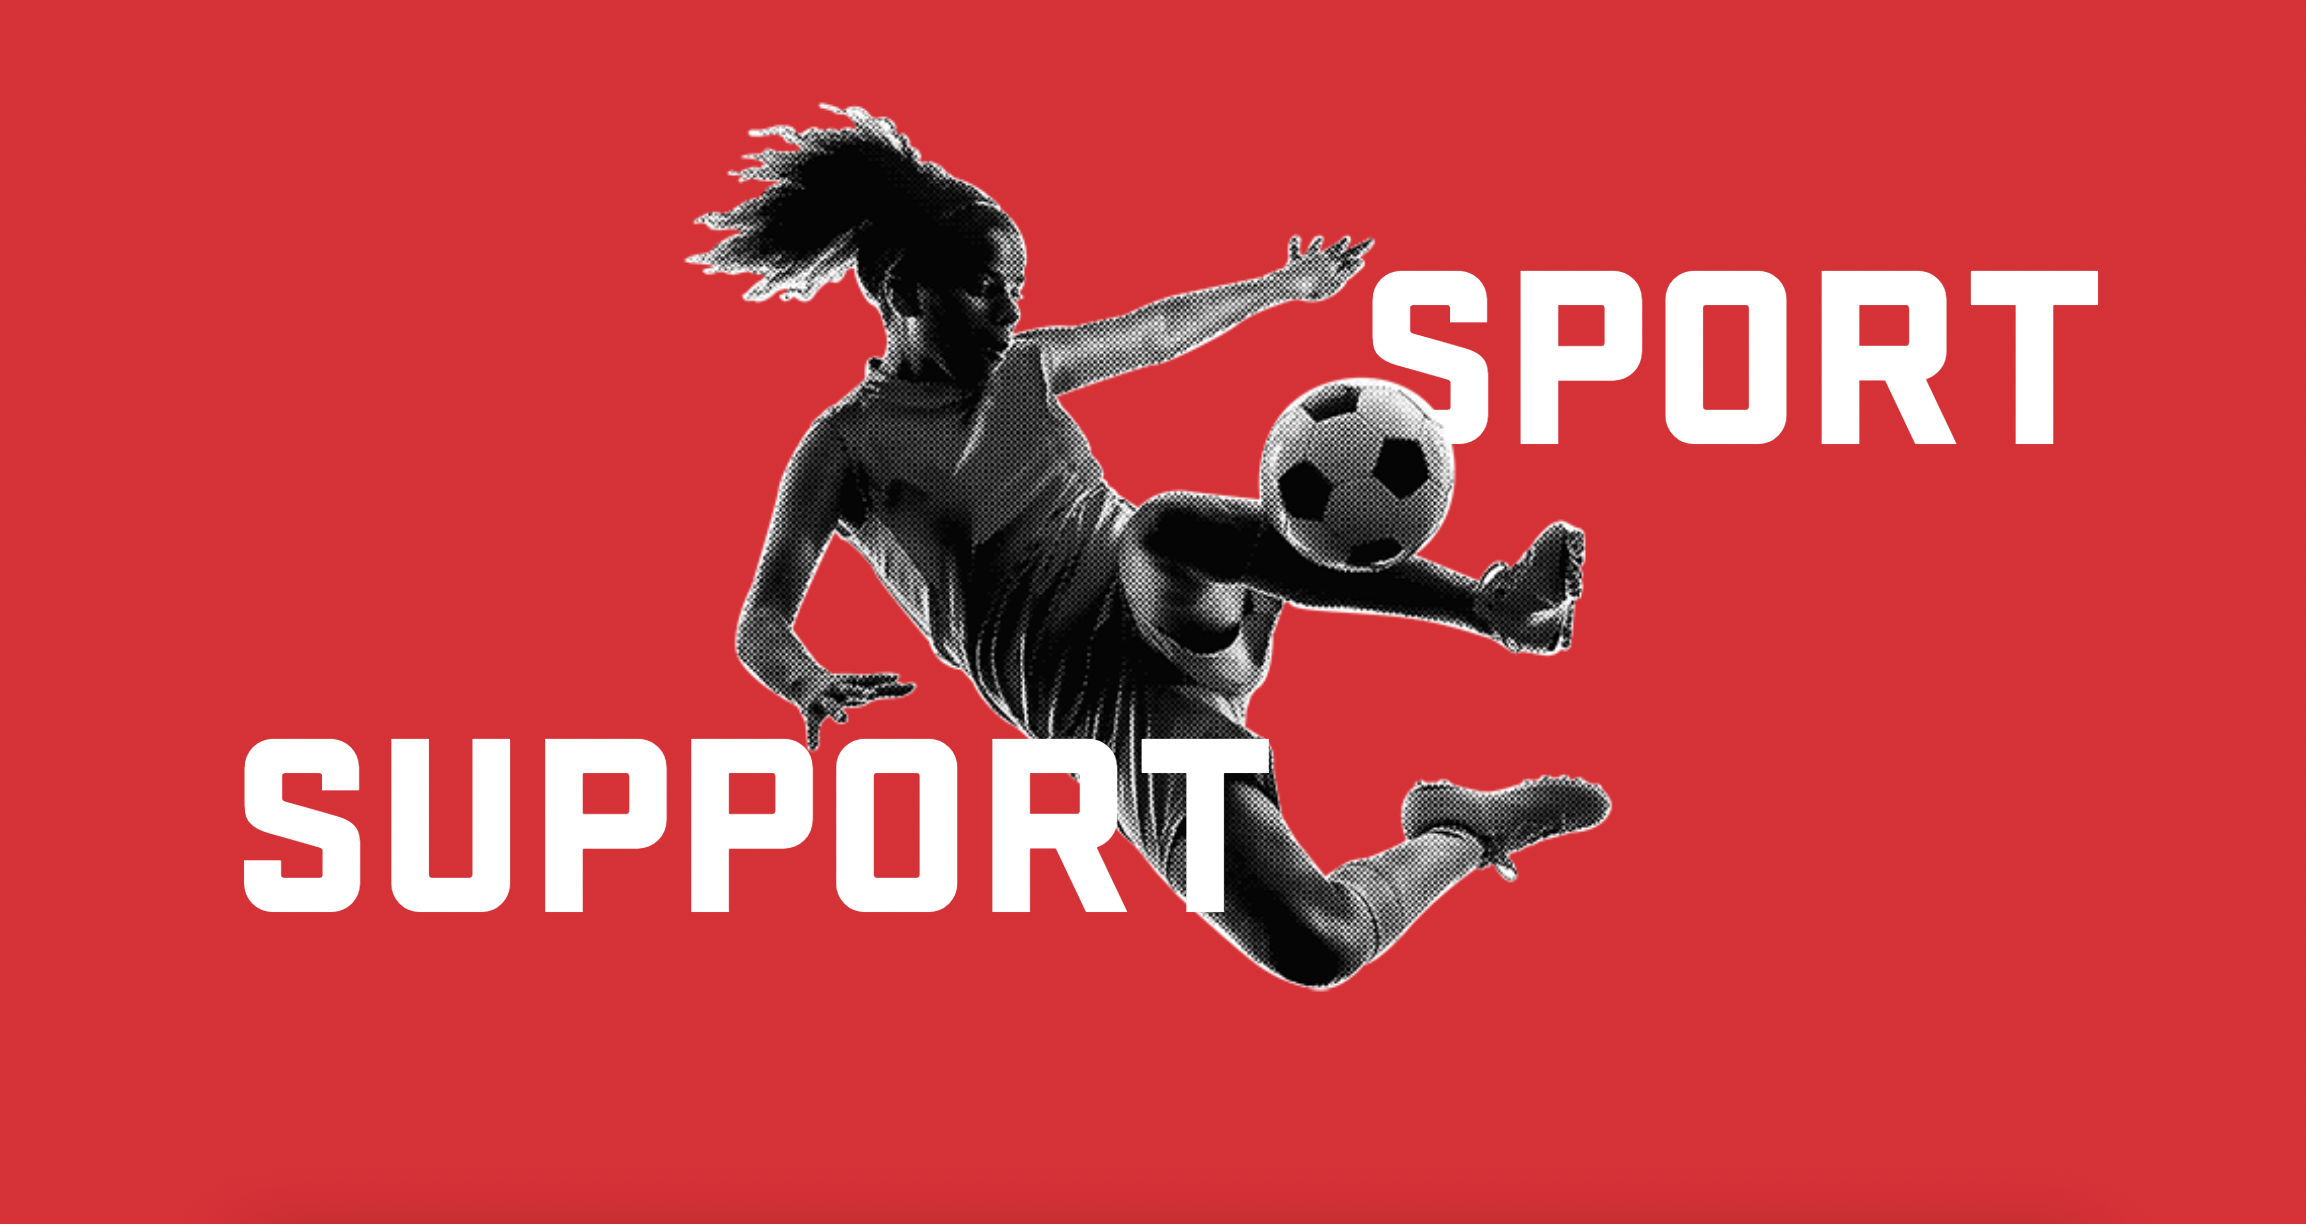 Short Hops: Please help us #SupportSport